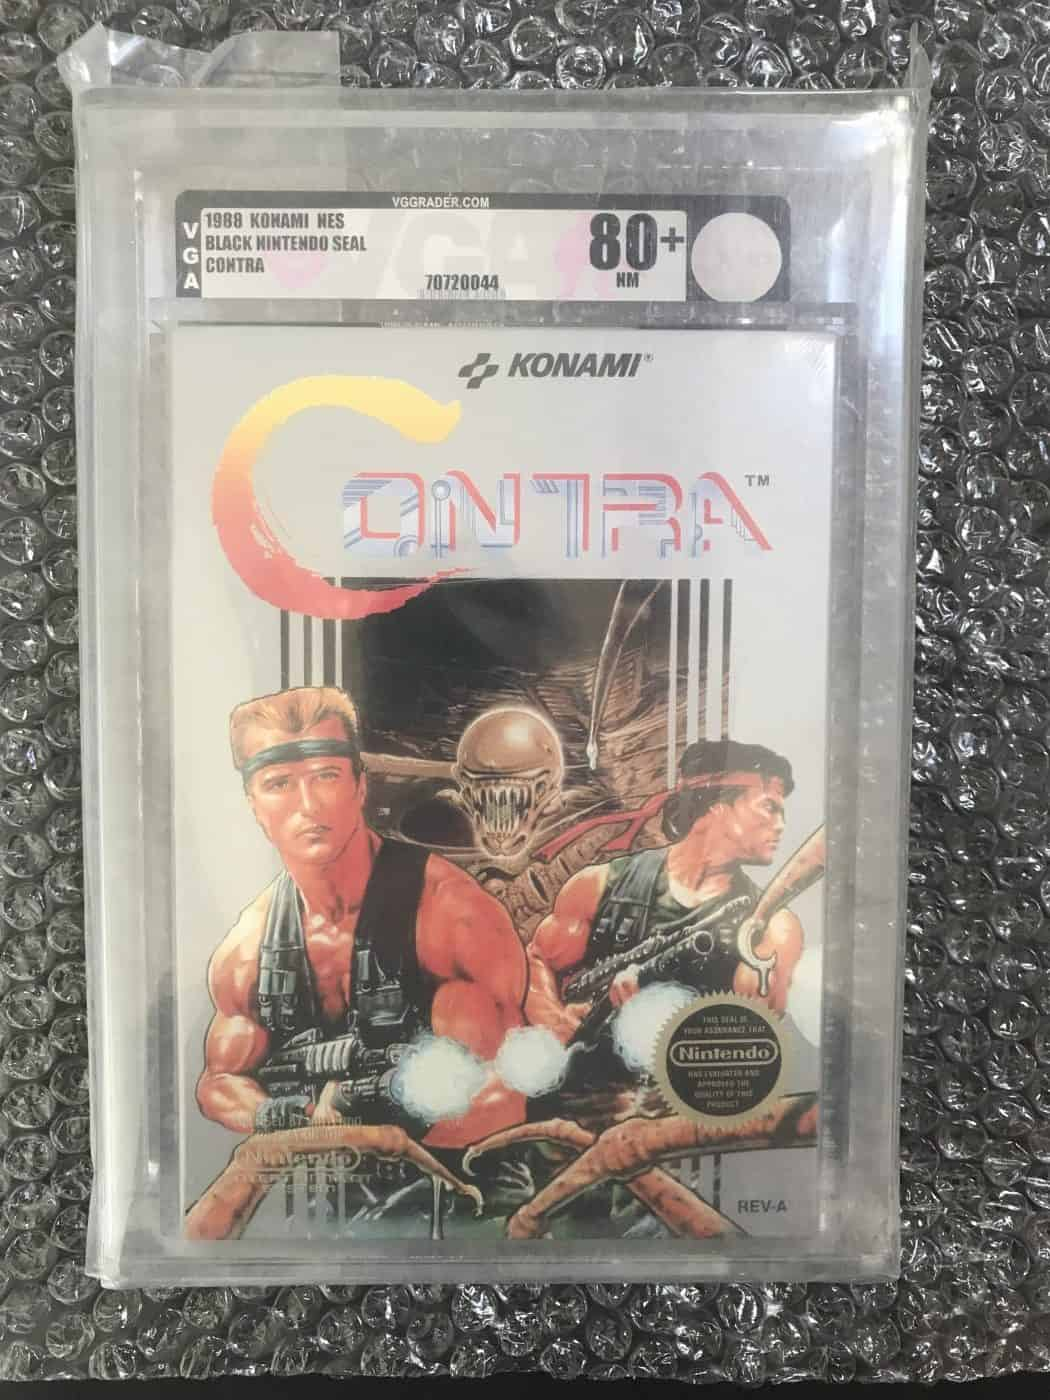 a picture of a vga graded contra